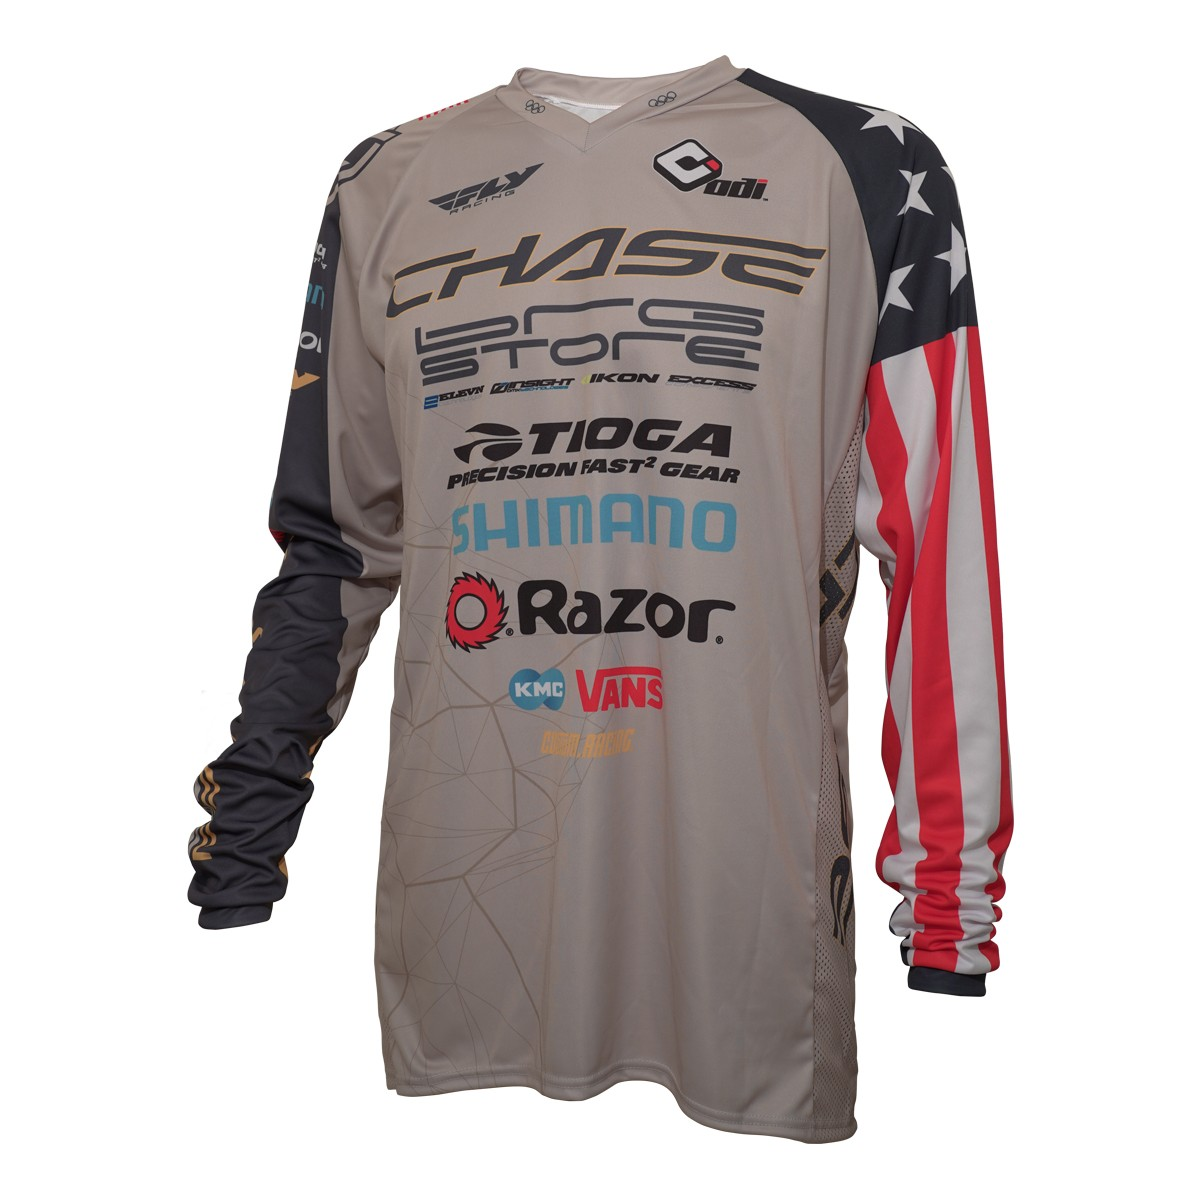 CHASE TEAM 2021 JERSEY CONNOR FIELDS REPLICA